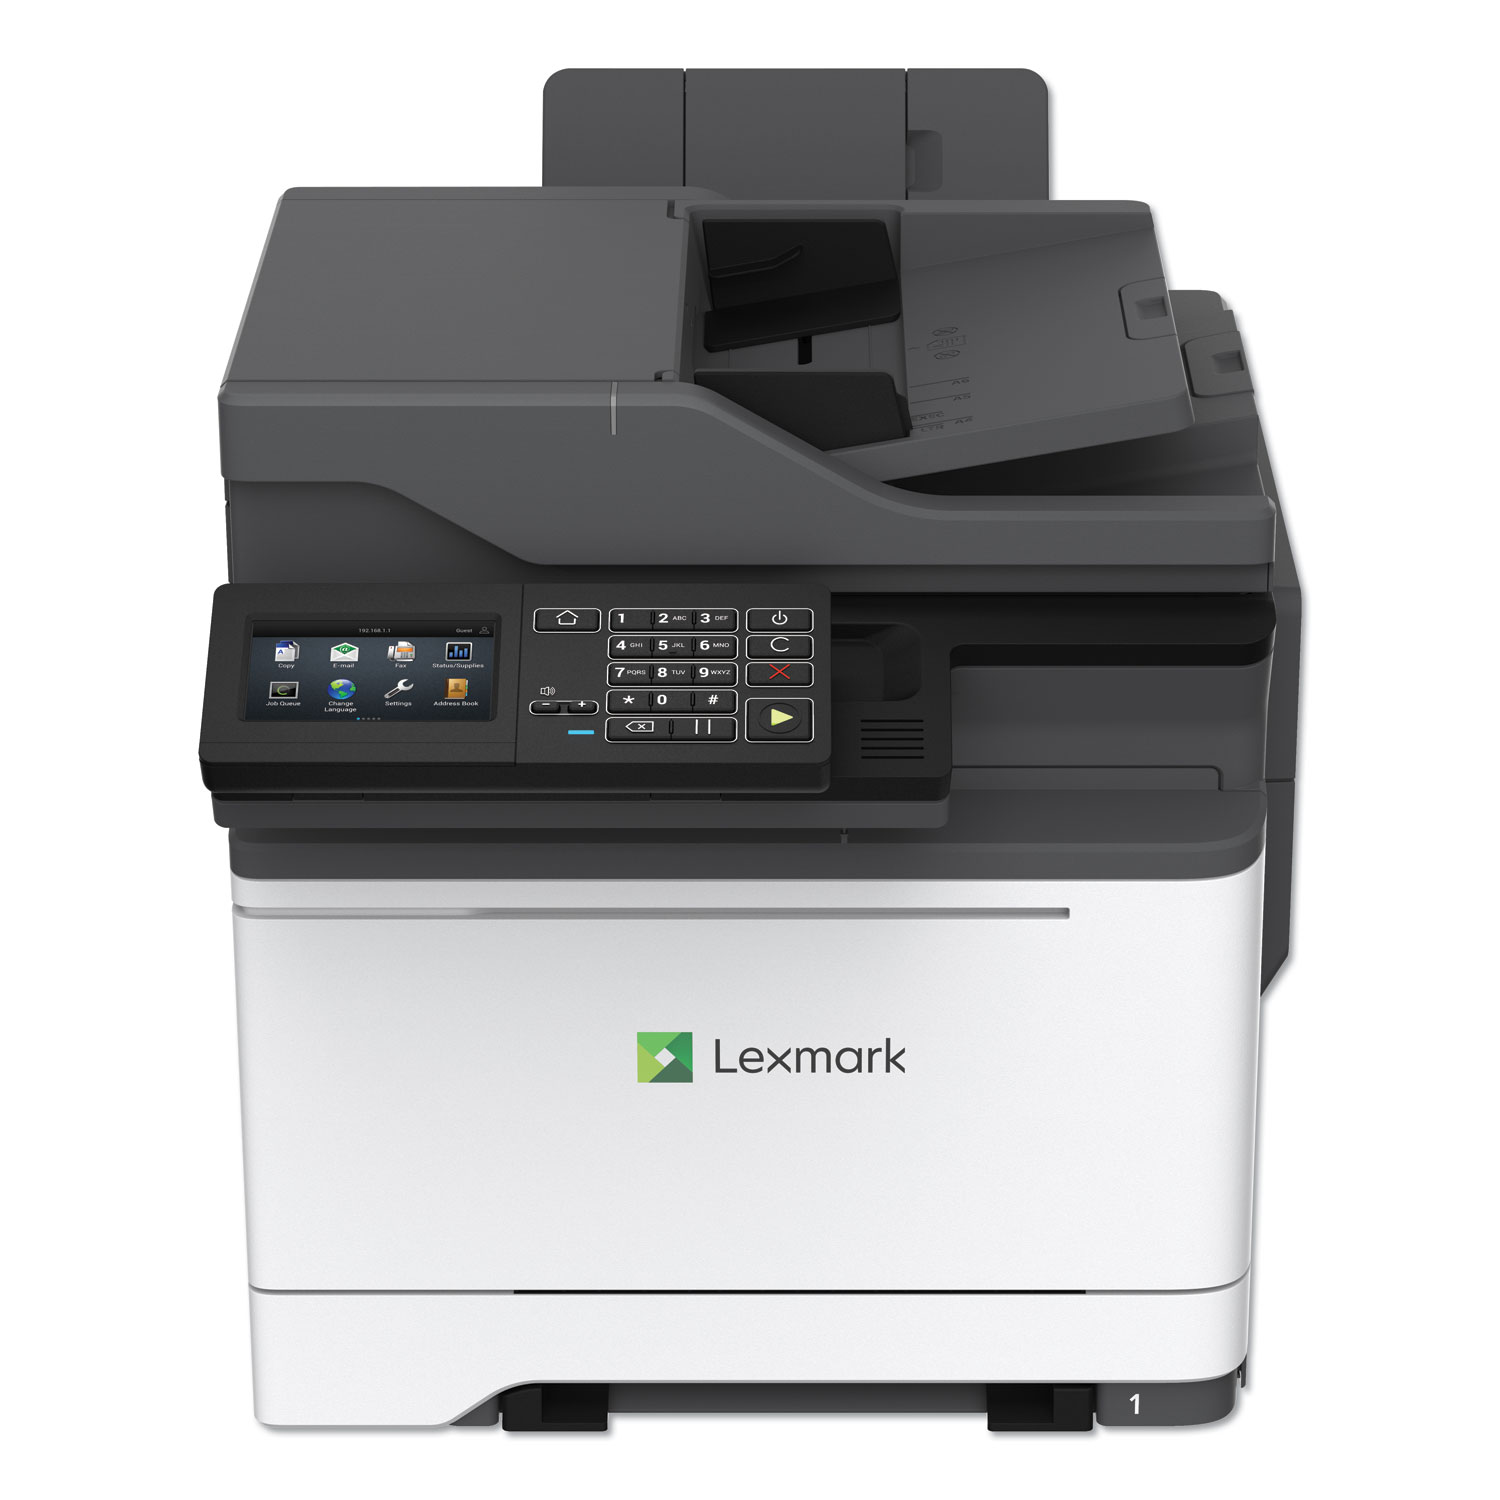 CX622ade Multifunction Printer, Copy/Fax/Print/Scan